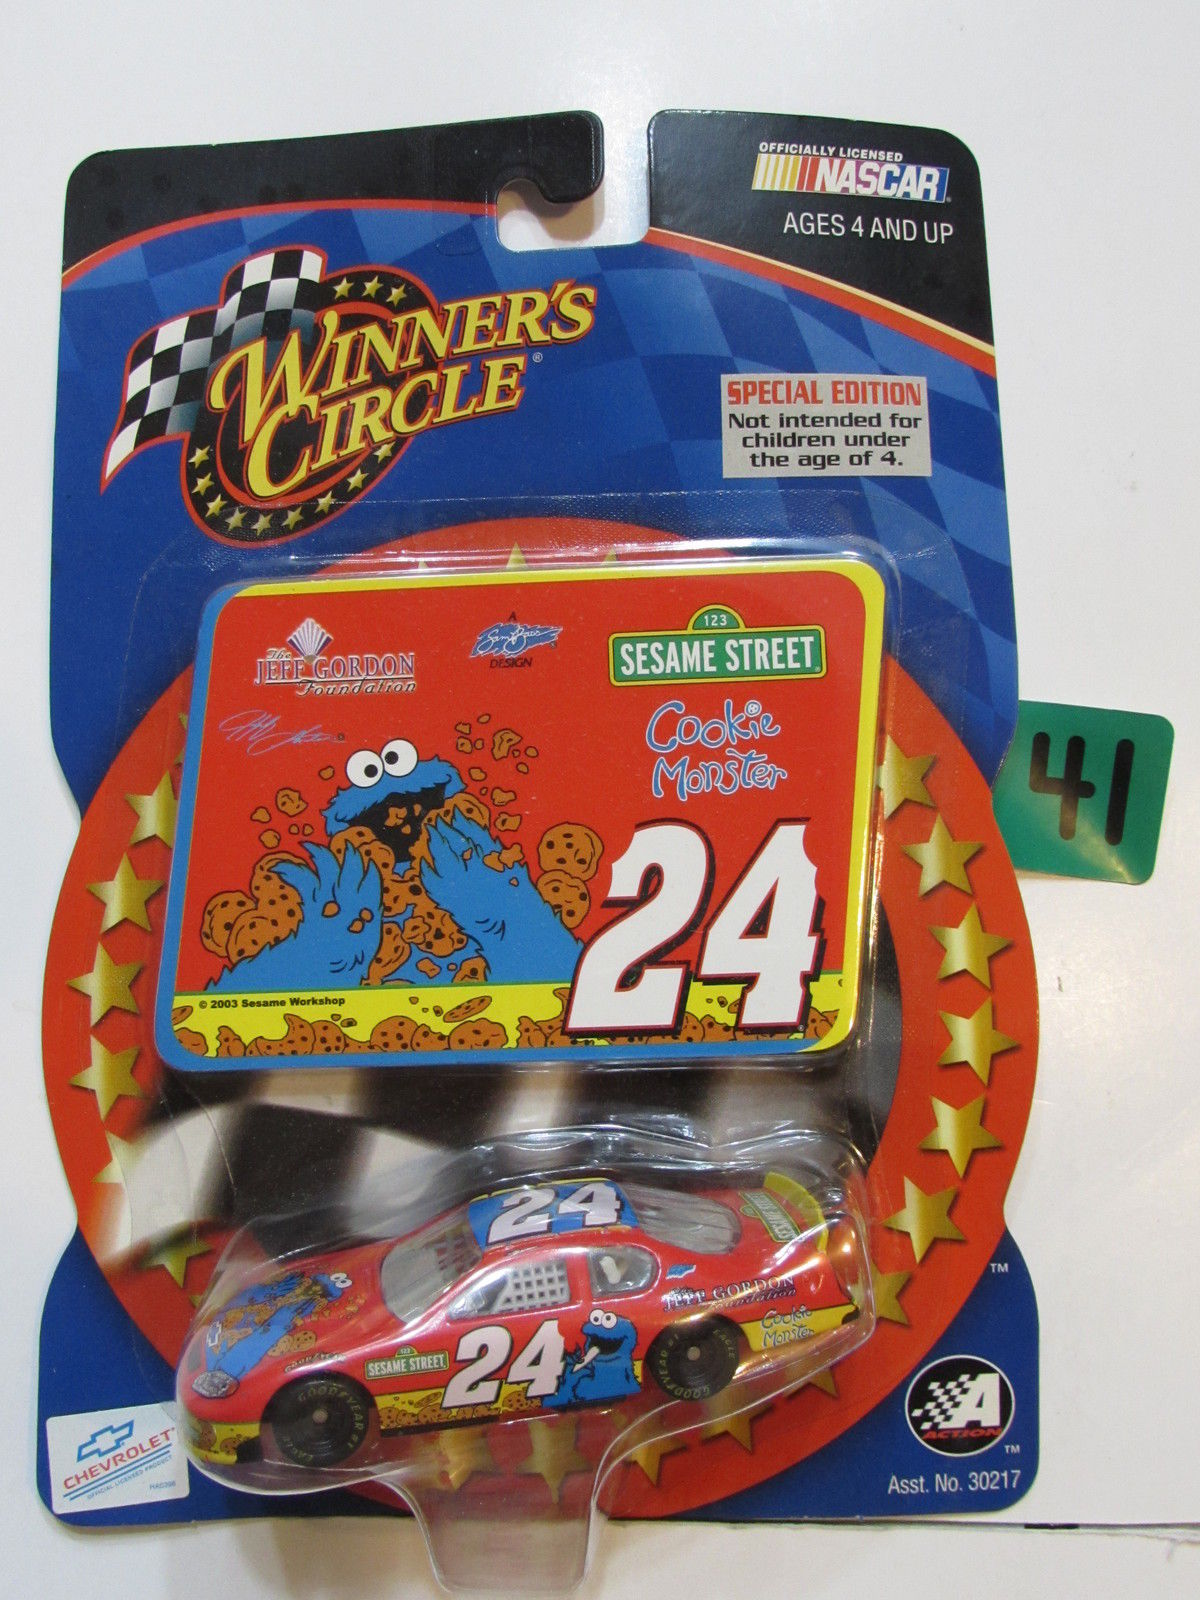 NASCAR WINNER'S CIRCLE 2003 JEFF GORDON #24 SESAME STREET COOKIE MONSTER